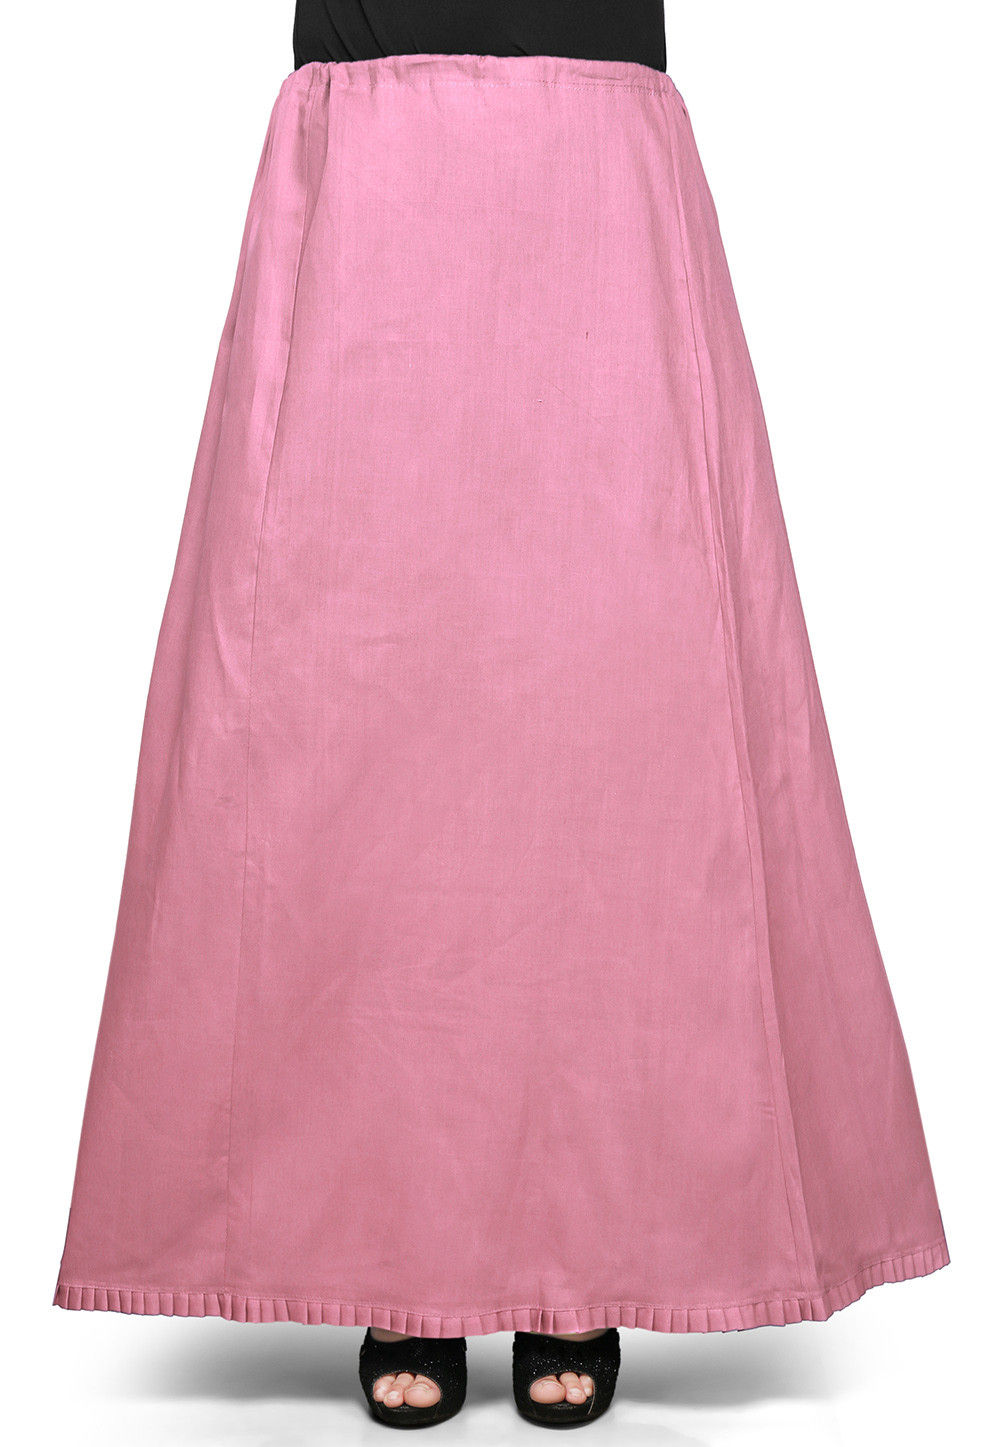 Cotton Petticoat in Pink